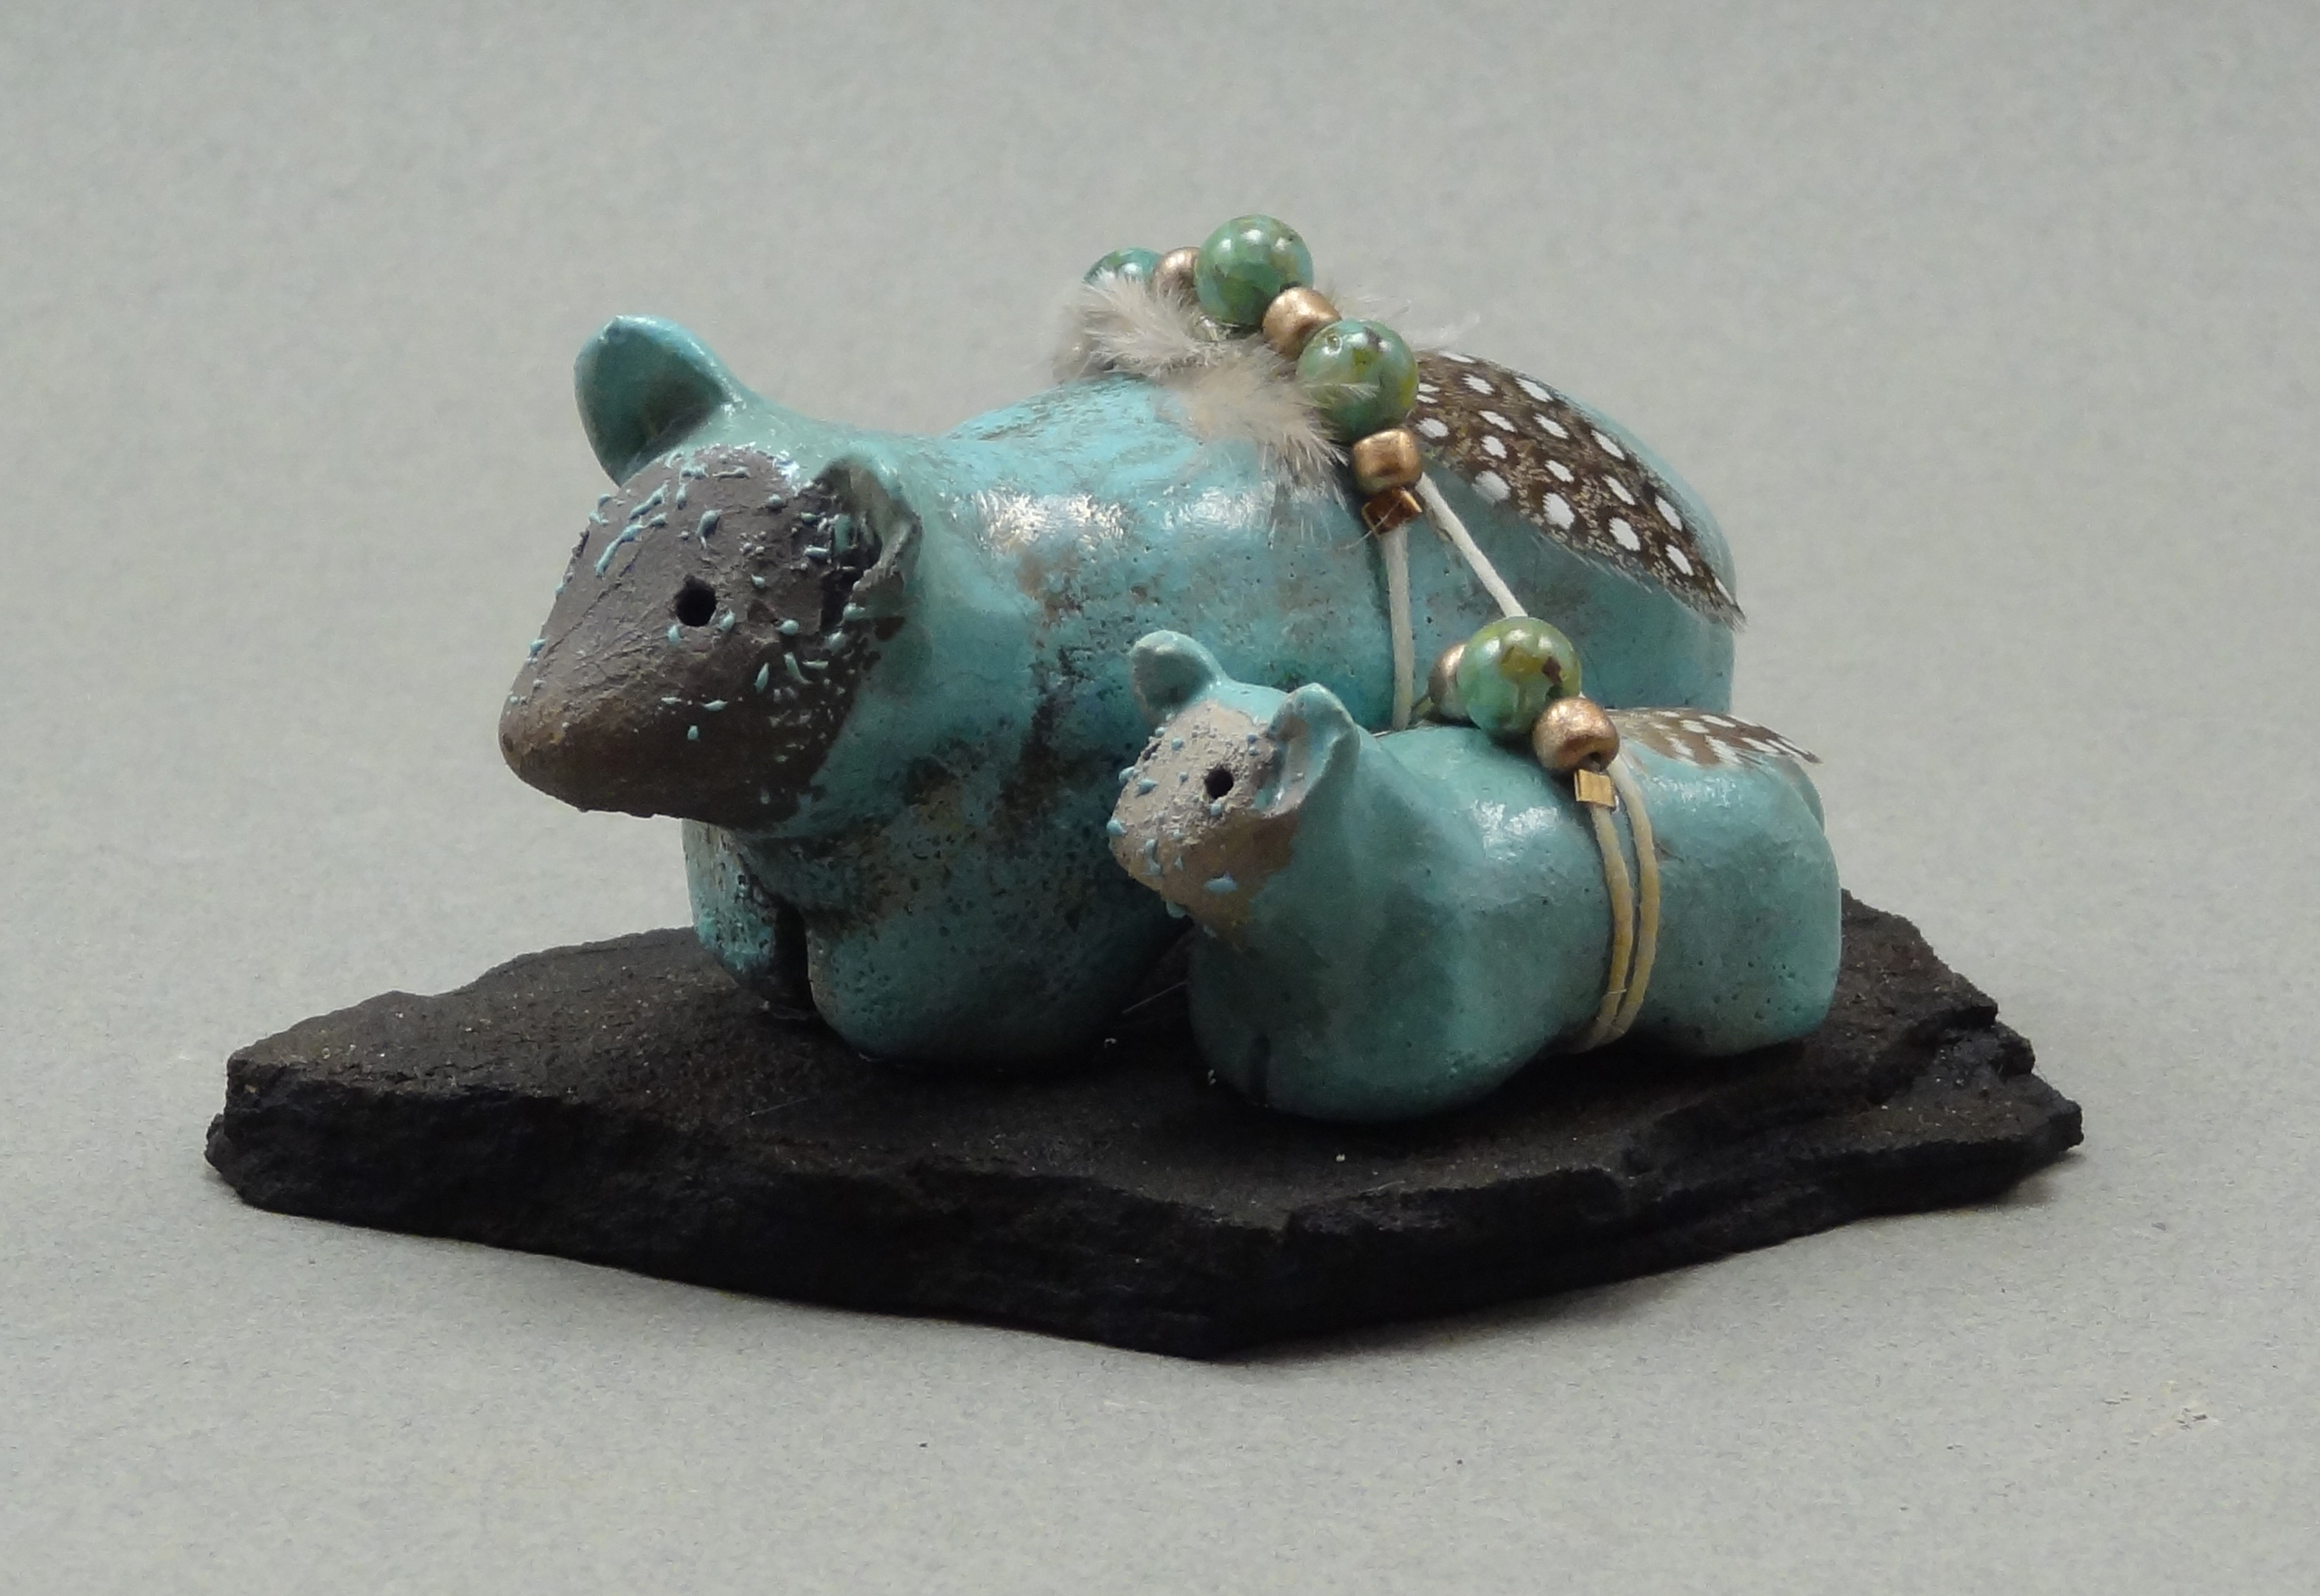 Bear and cub, Carribean Blue glaze, raku fired, 3 x 2 x 1 inch, mounted on flagstone